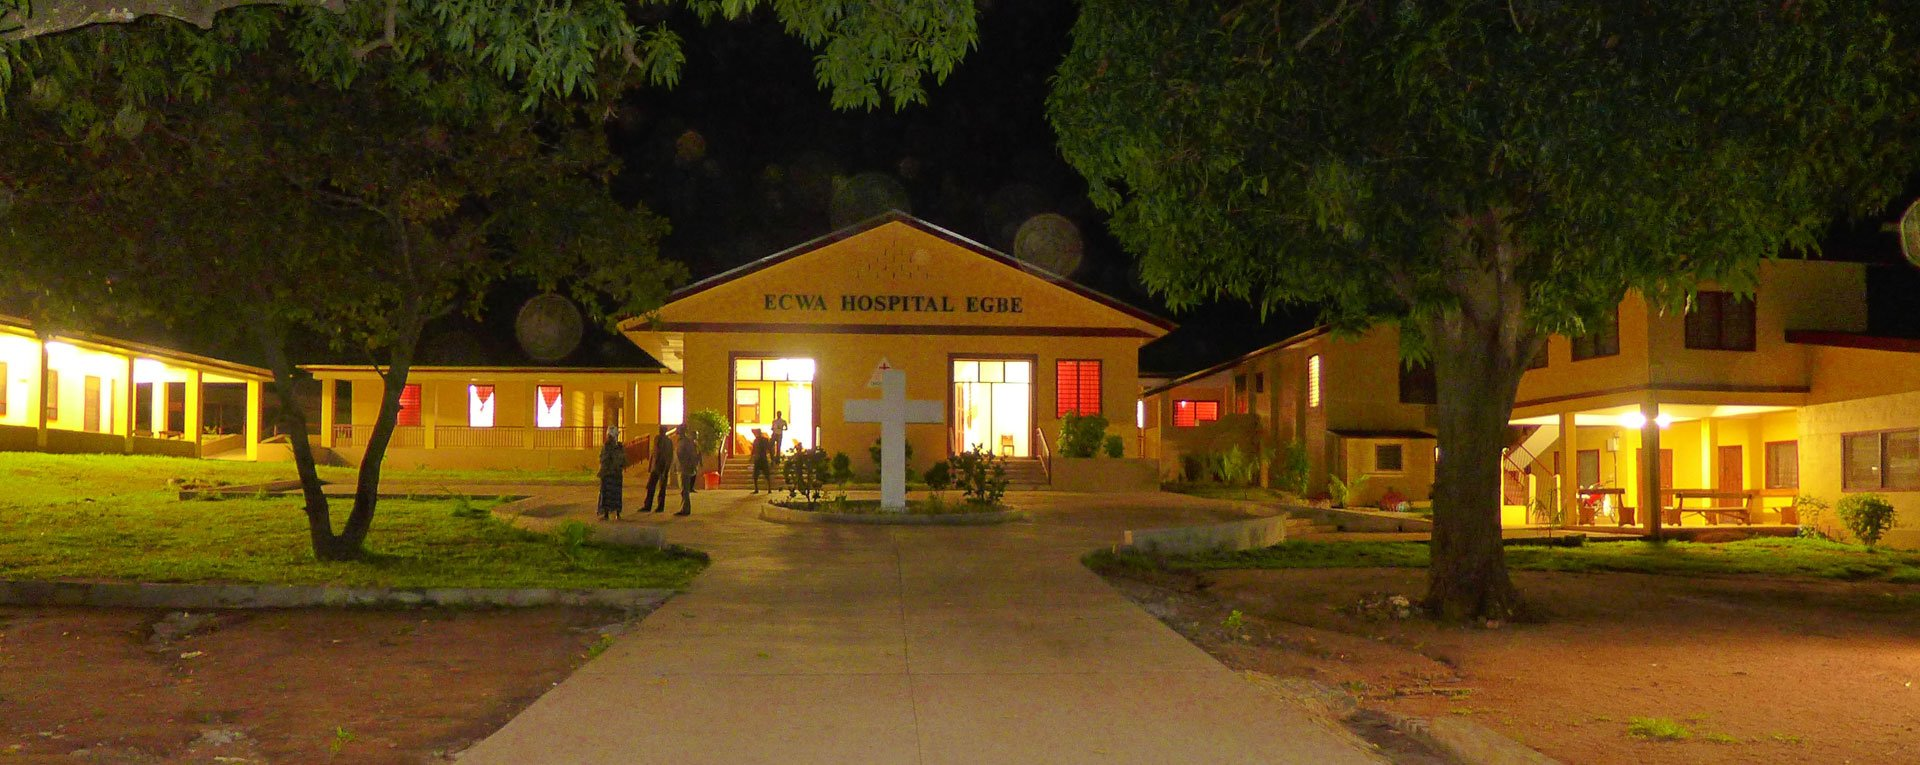 Egbe Hospital at night